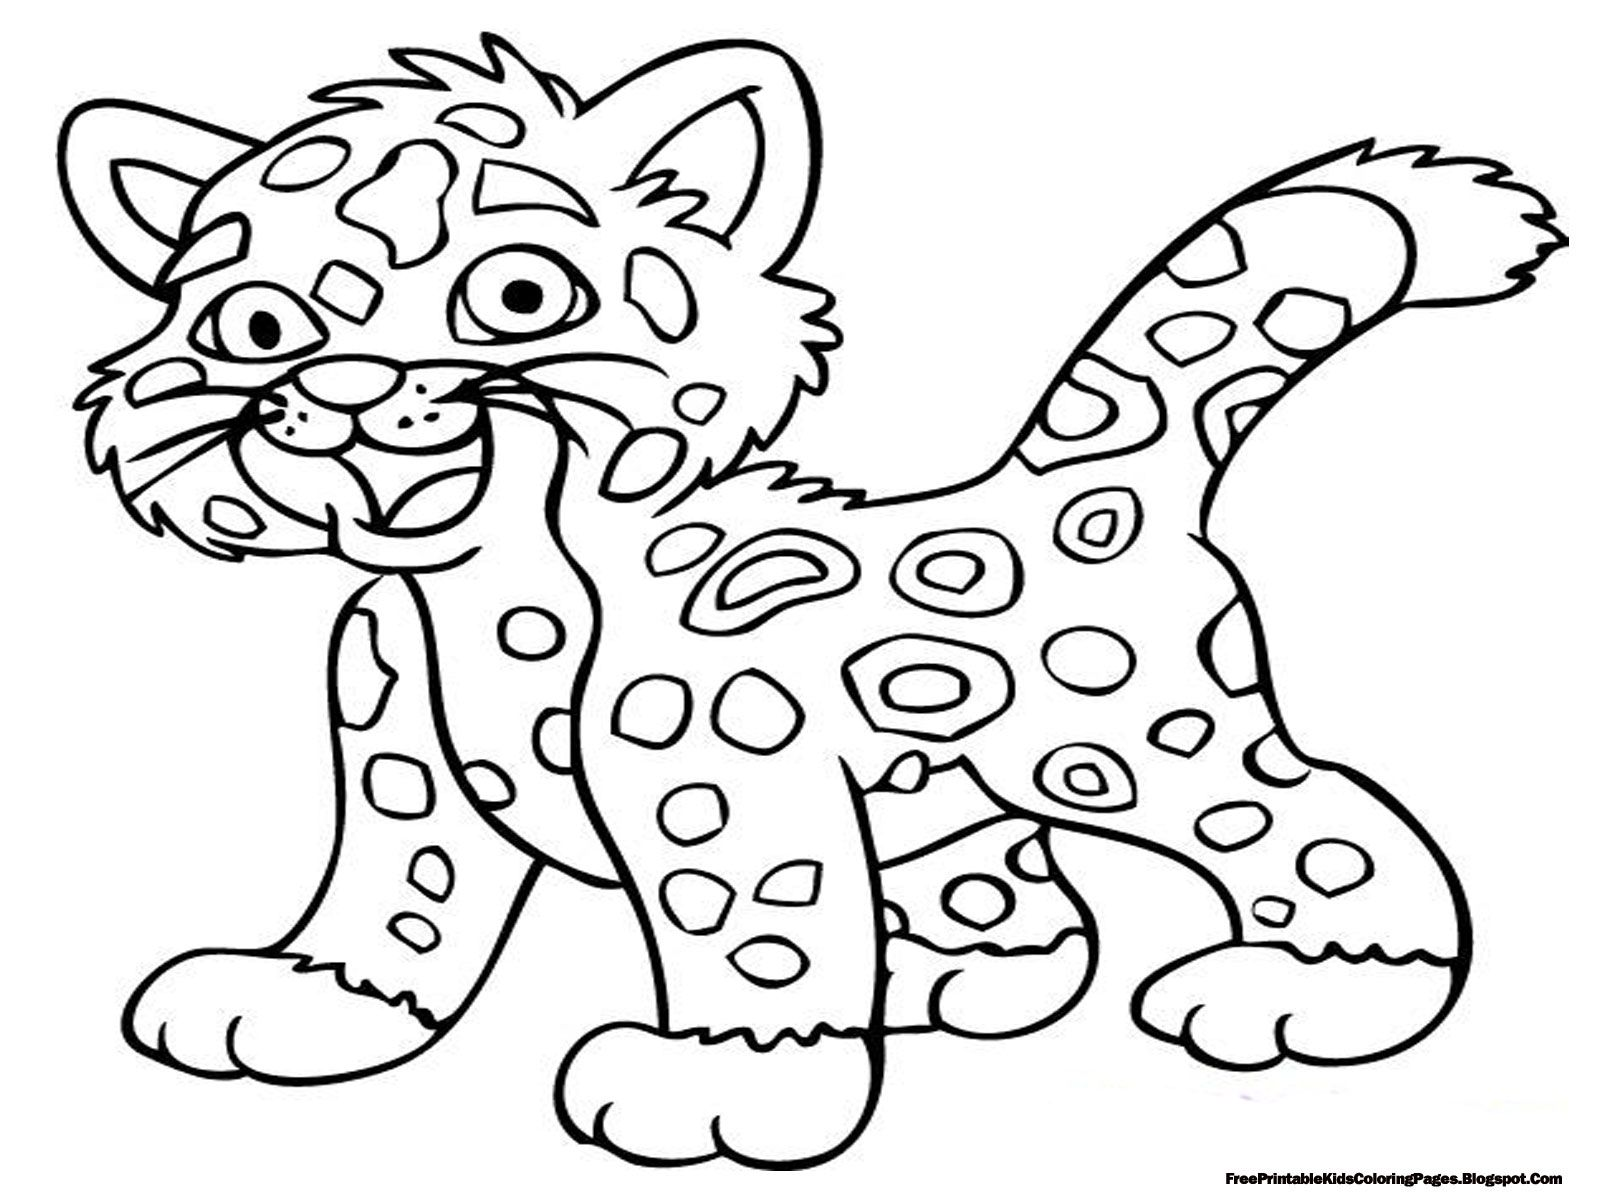 Jaguar Coloring Pages Free Printable Kids Coloring Pages Coloring ...